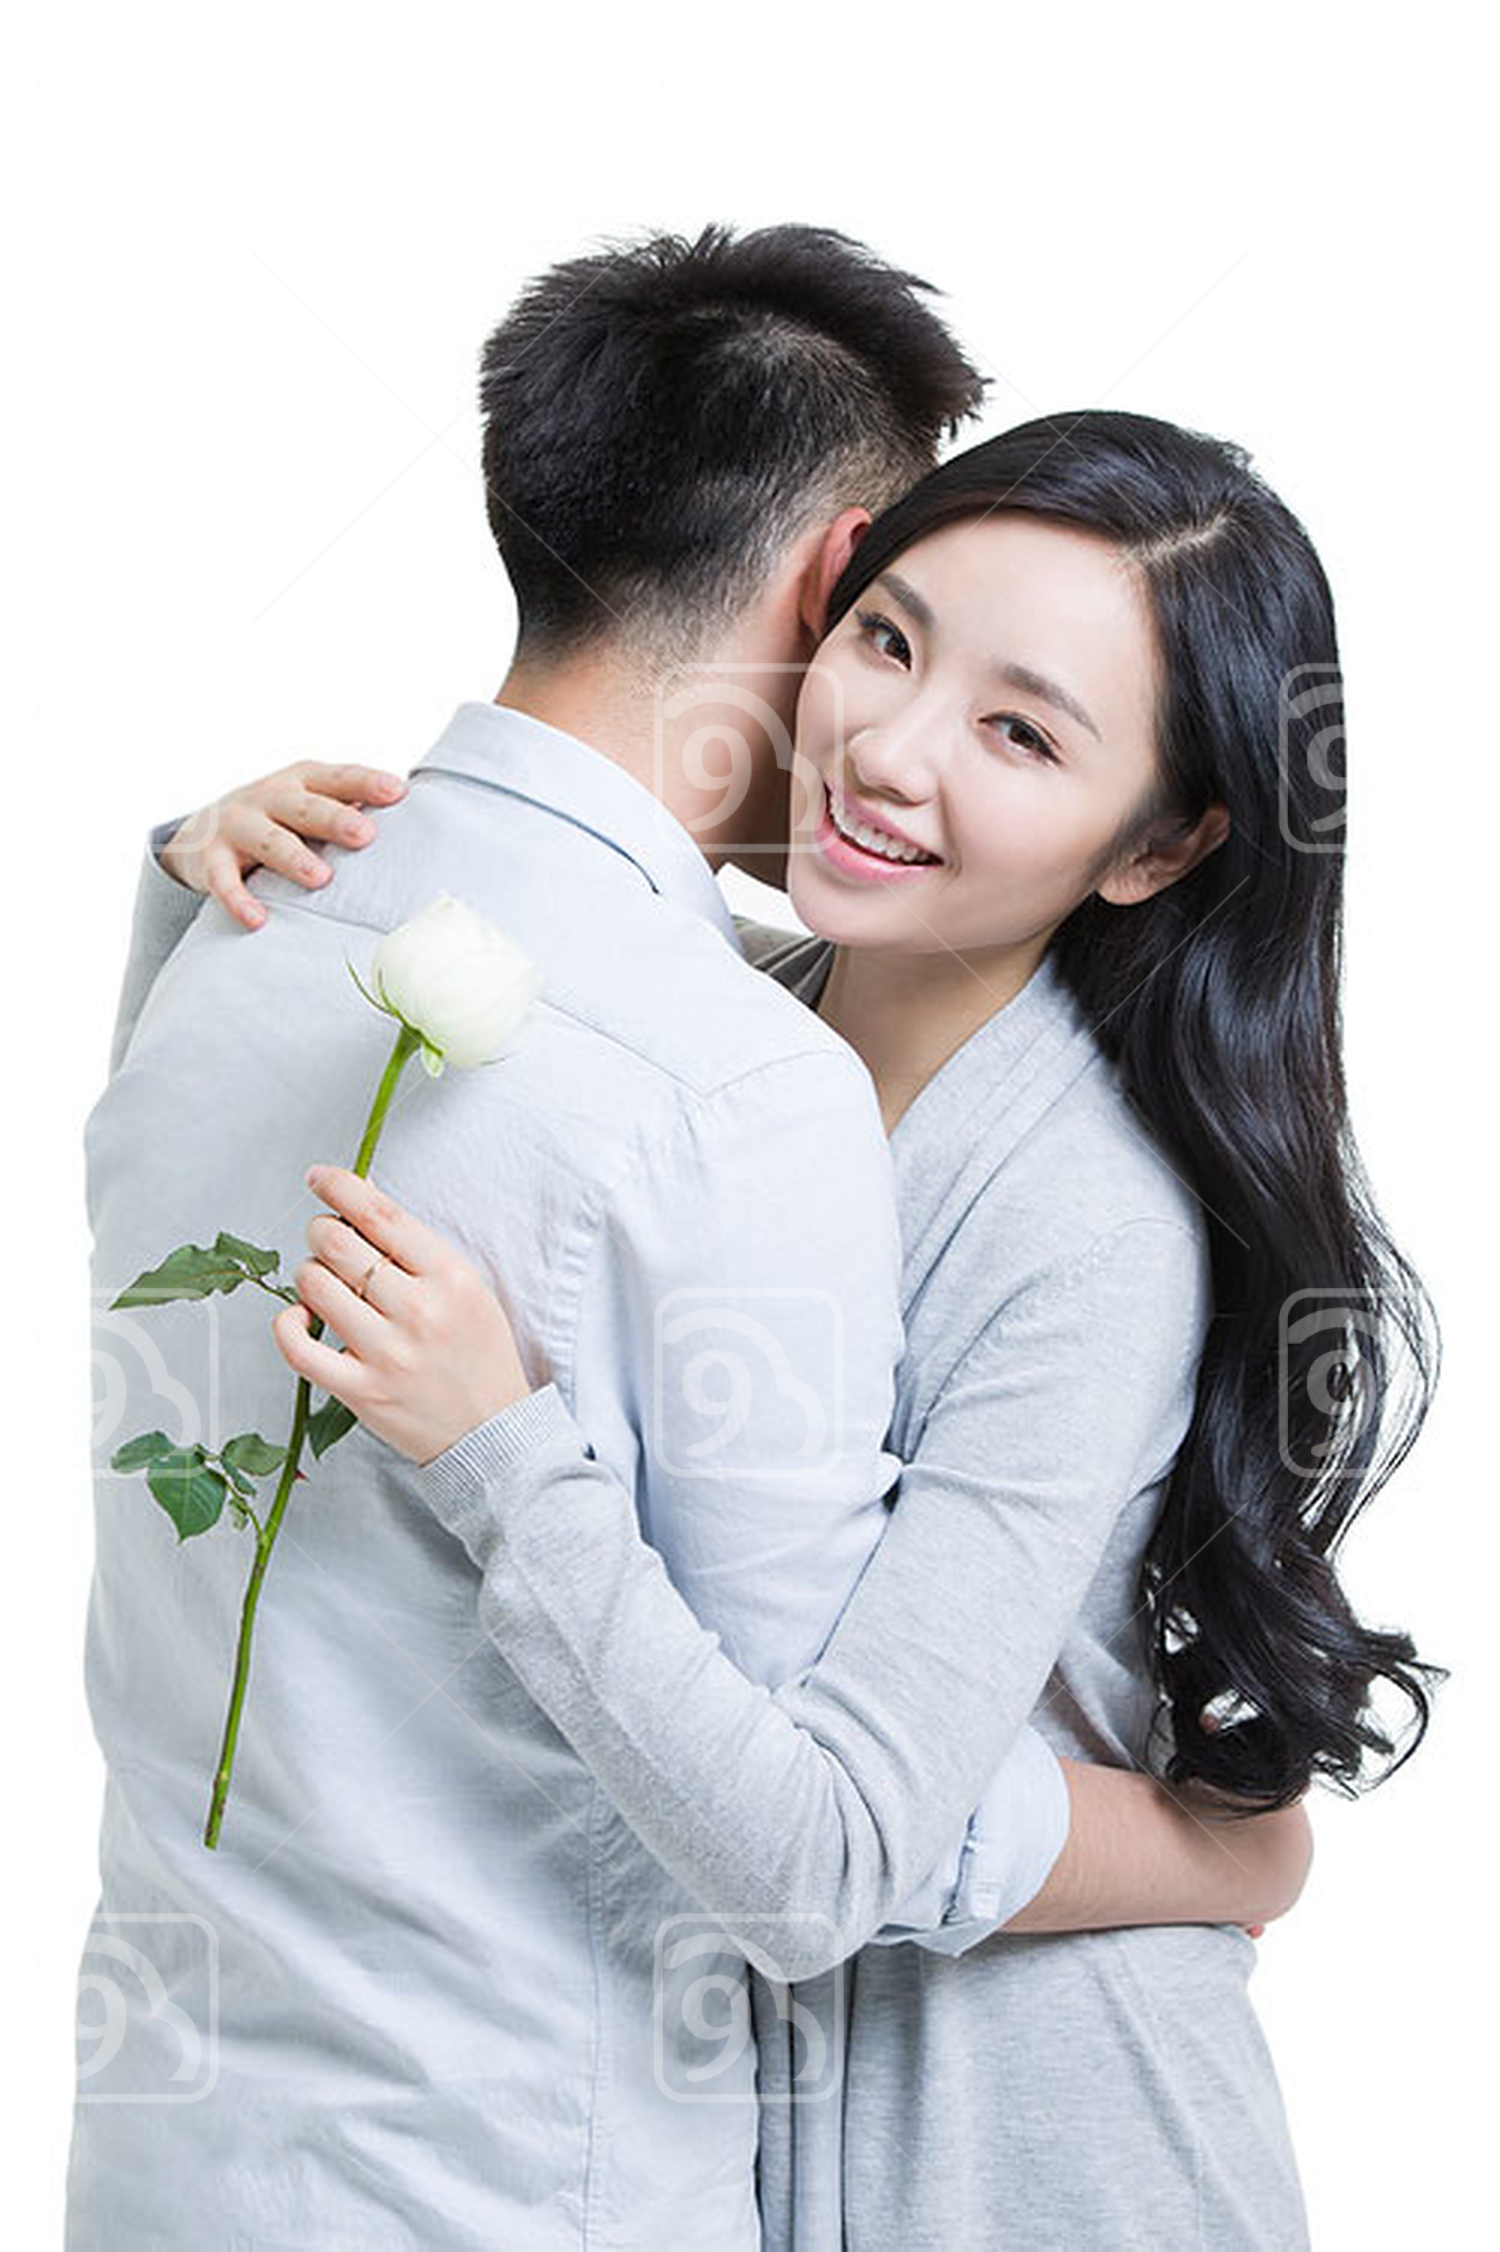 Young Chinese man giving a rose to girlfriend